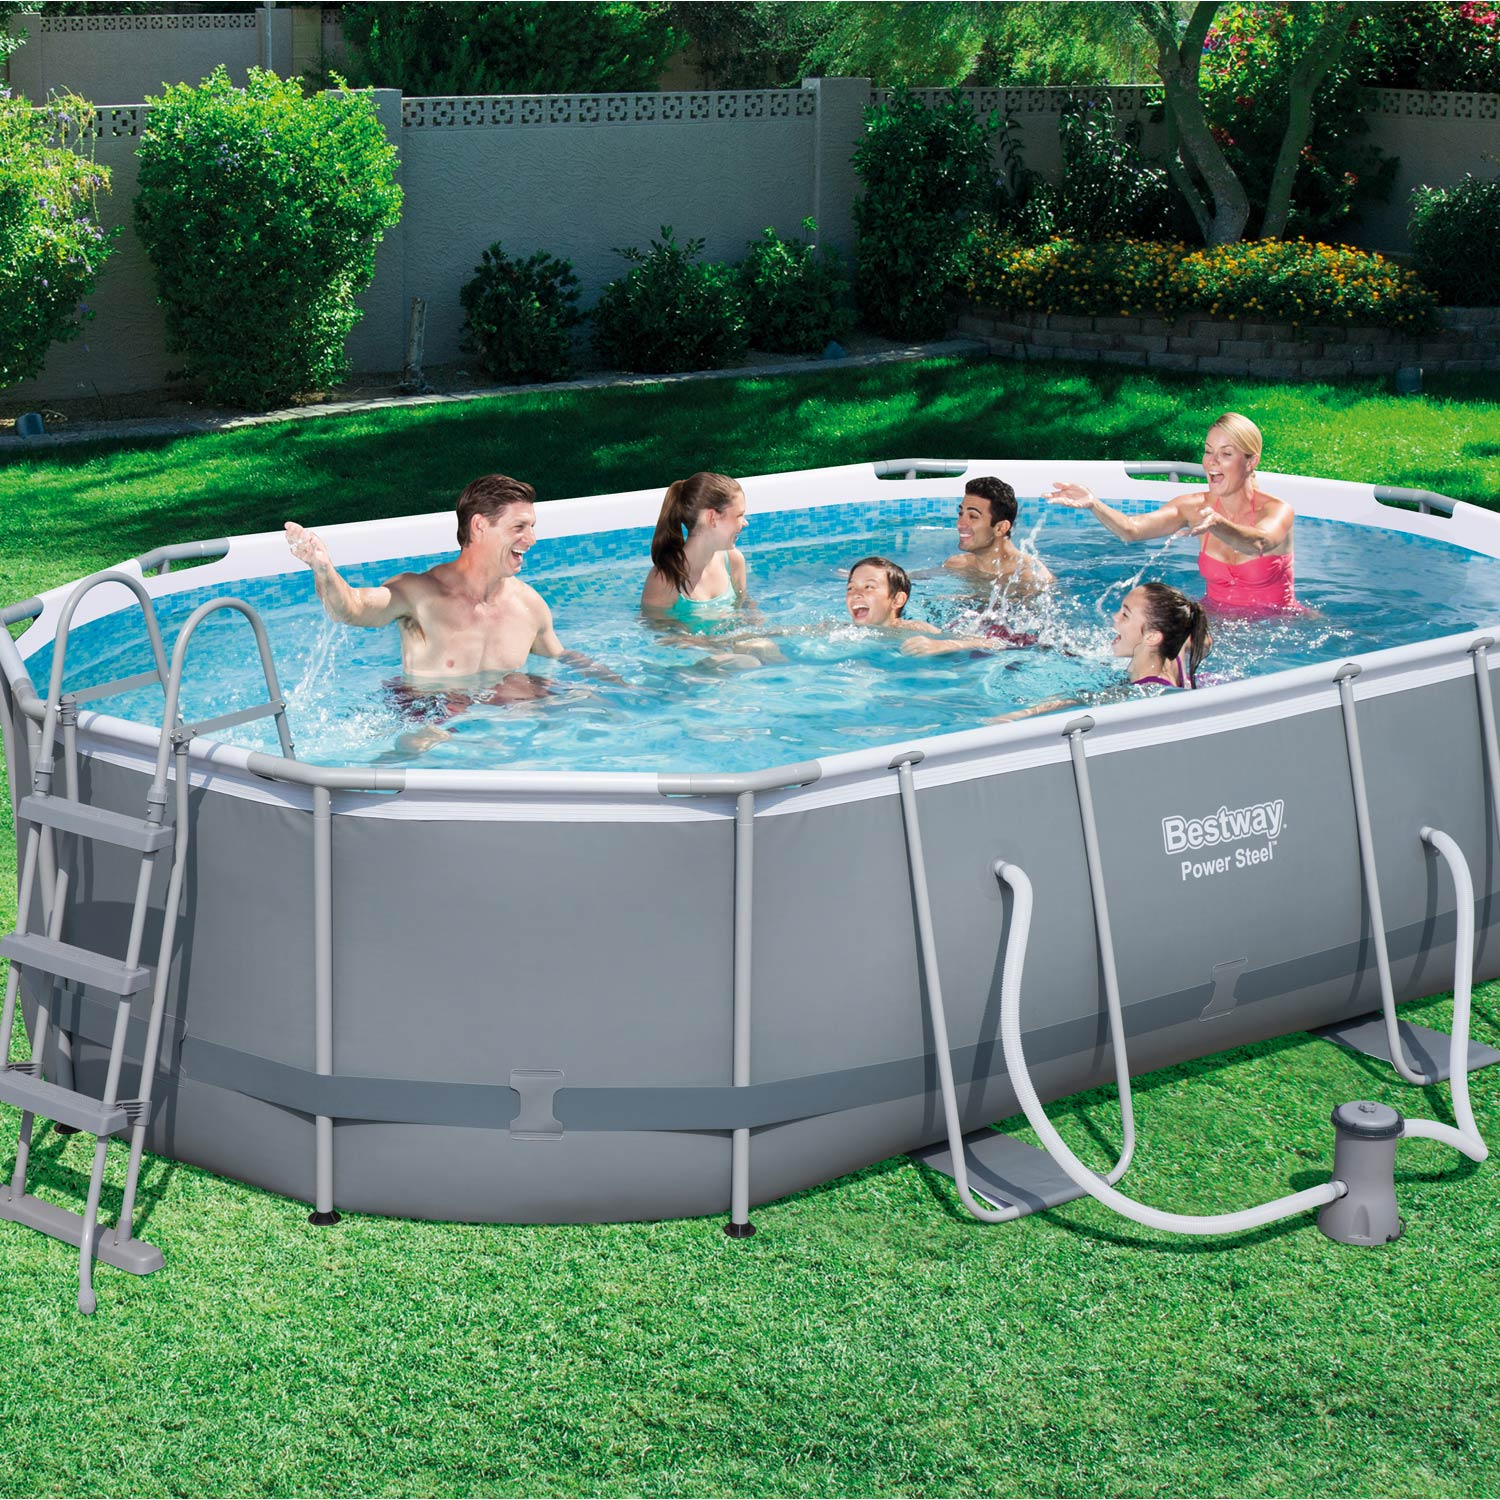 Piscine hors sol autoportante tubulaire bestway l x for Piscine hors sol naturelle